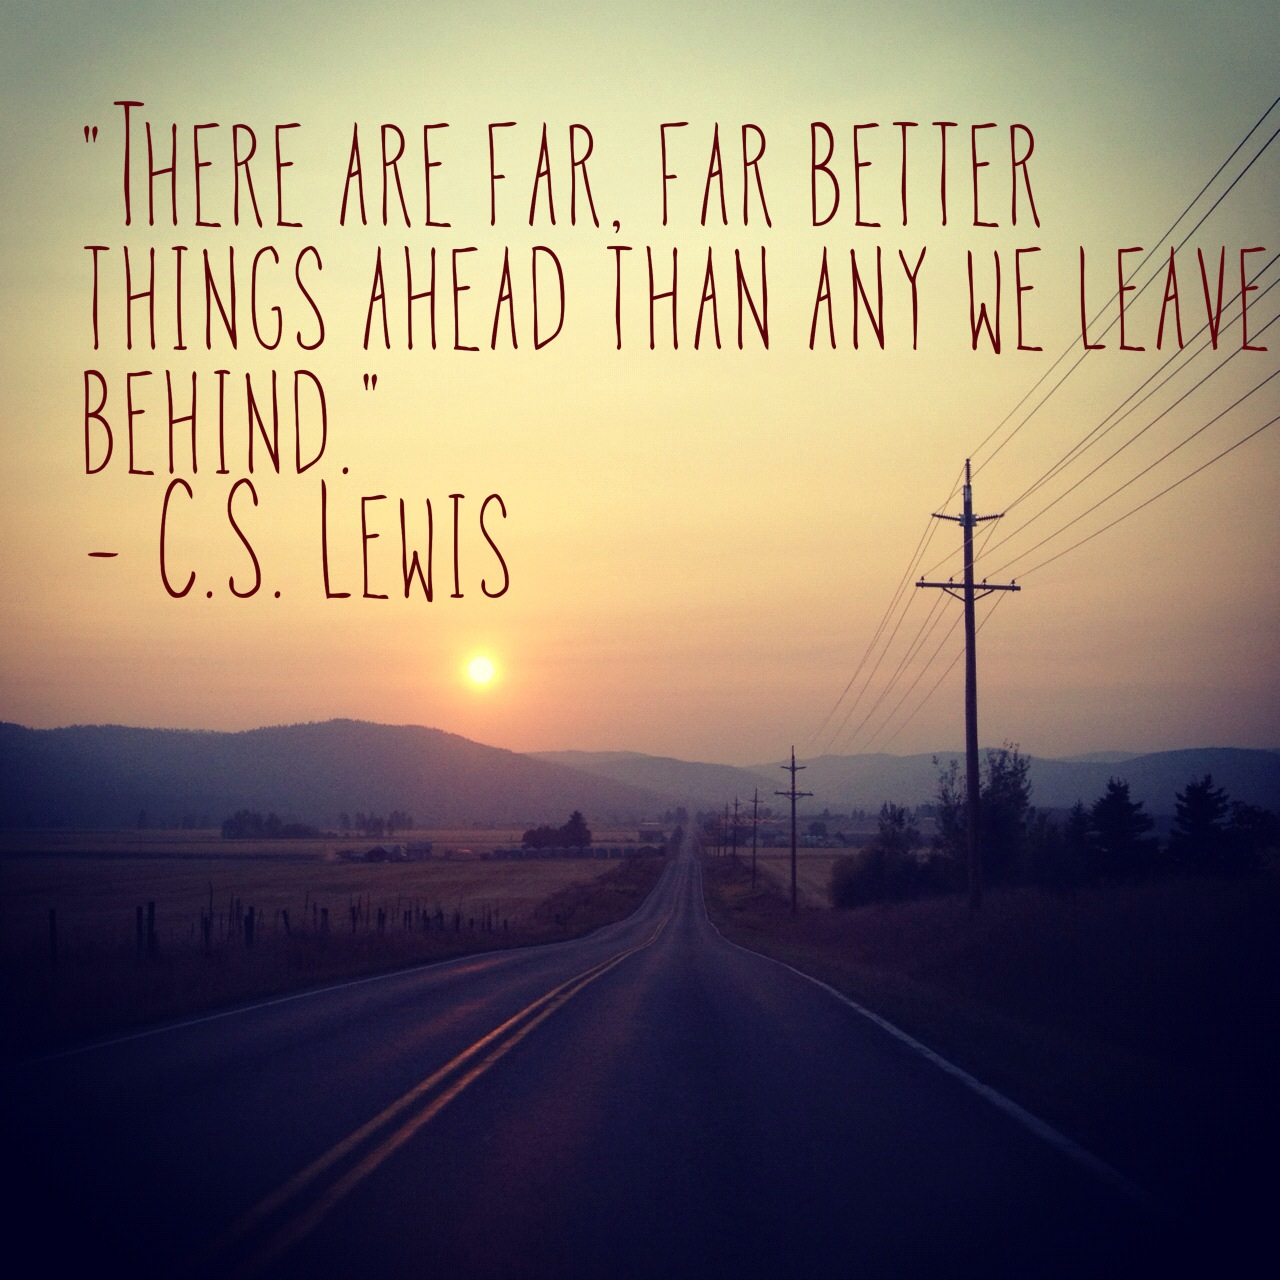 tumblr pictures and quotes cs lewis quotes wallpaperjpg 1280x1280